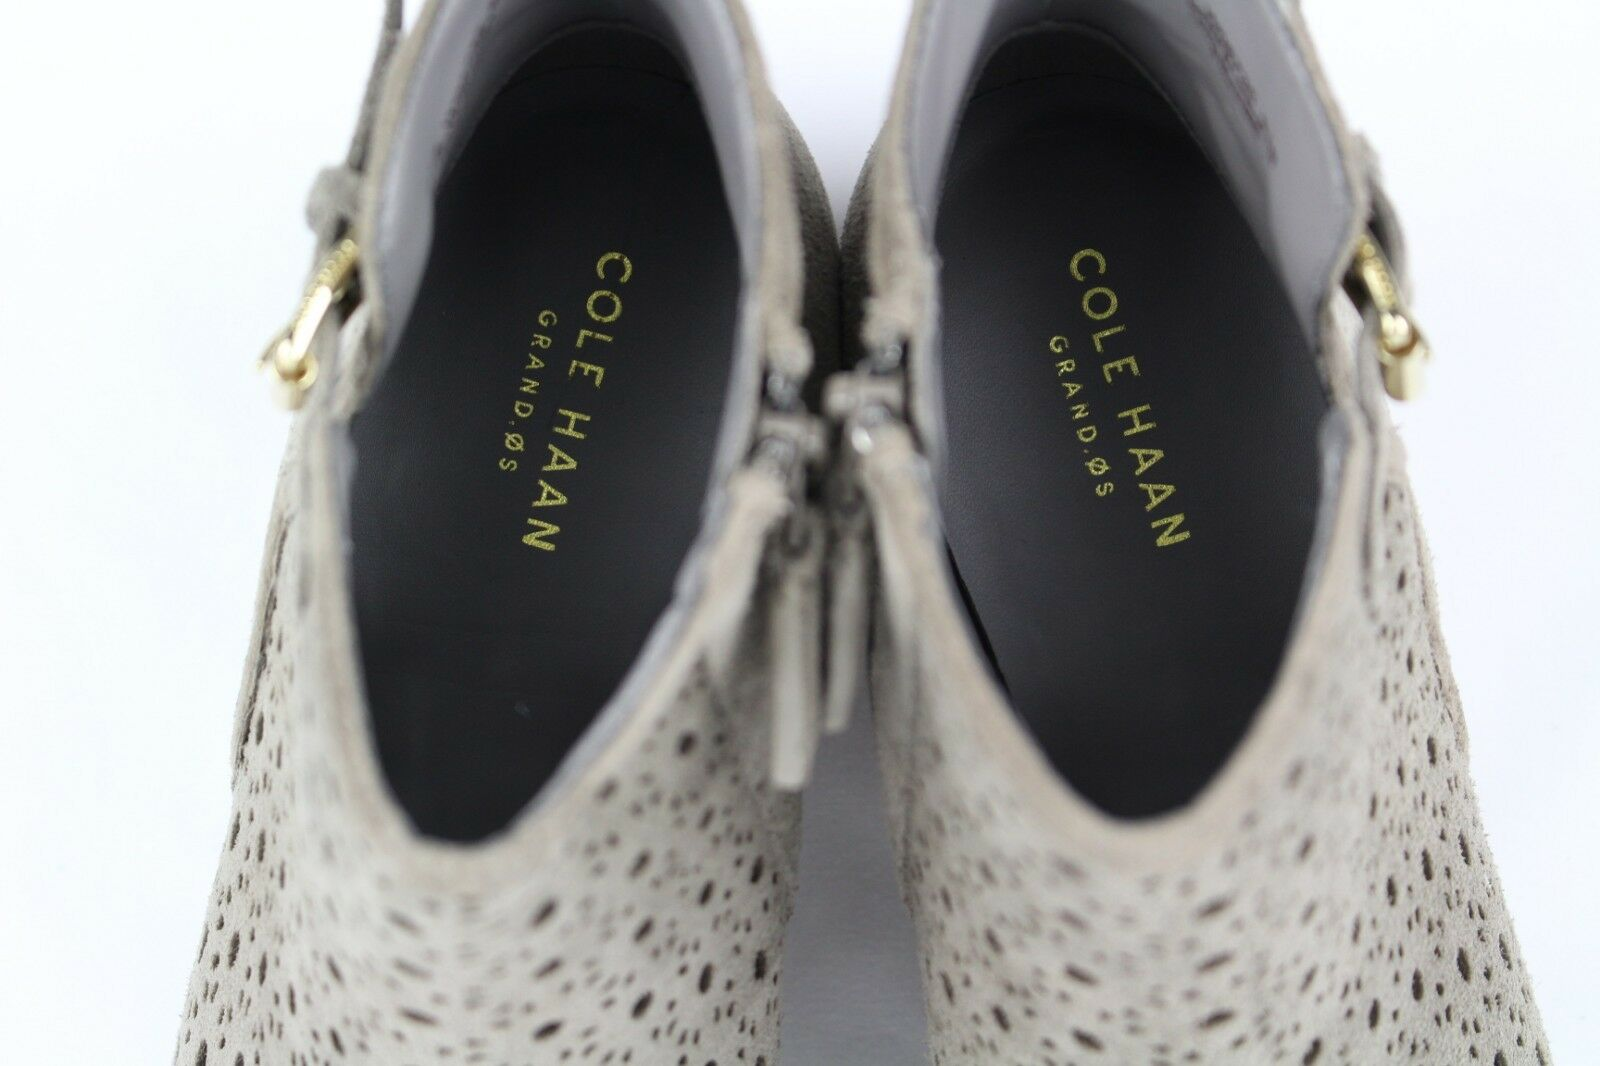 Cole Haan para mujer Willette Willette Willette botín perforada 45mm Talla 10.5 Sea Otter   W08735 f8f1c6